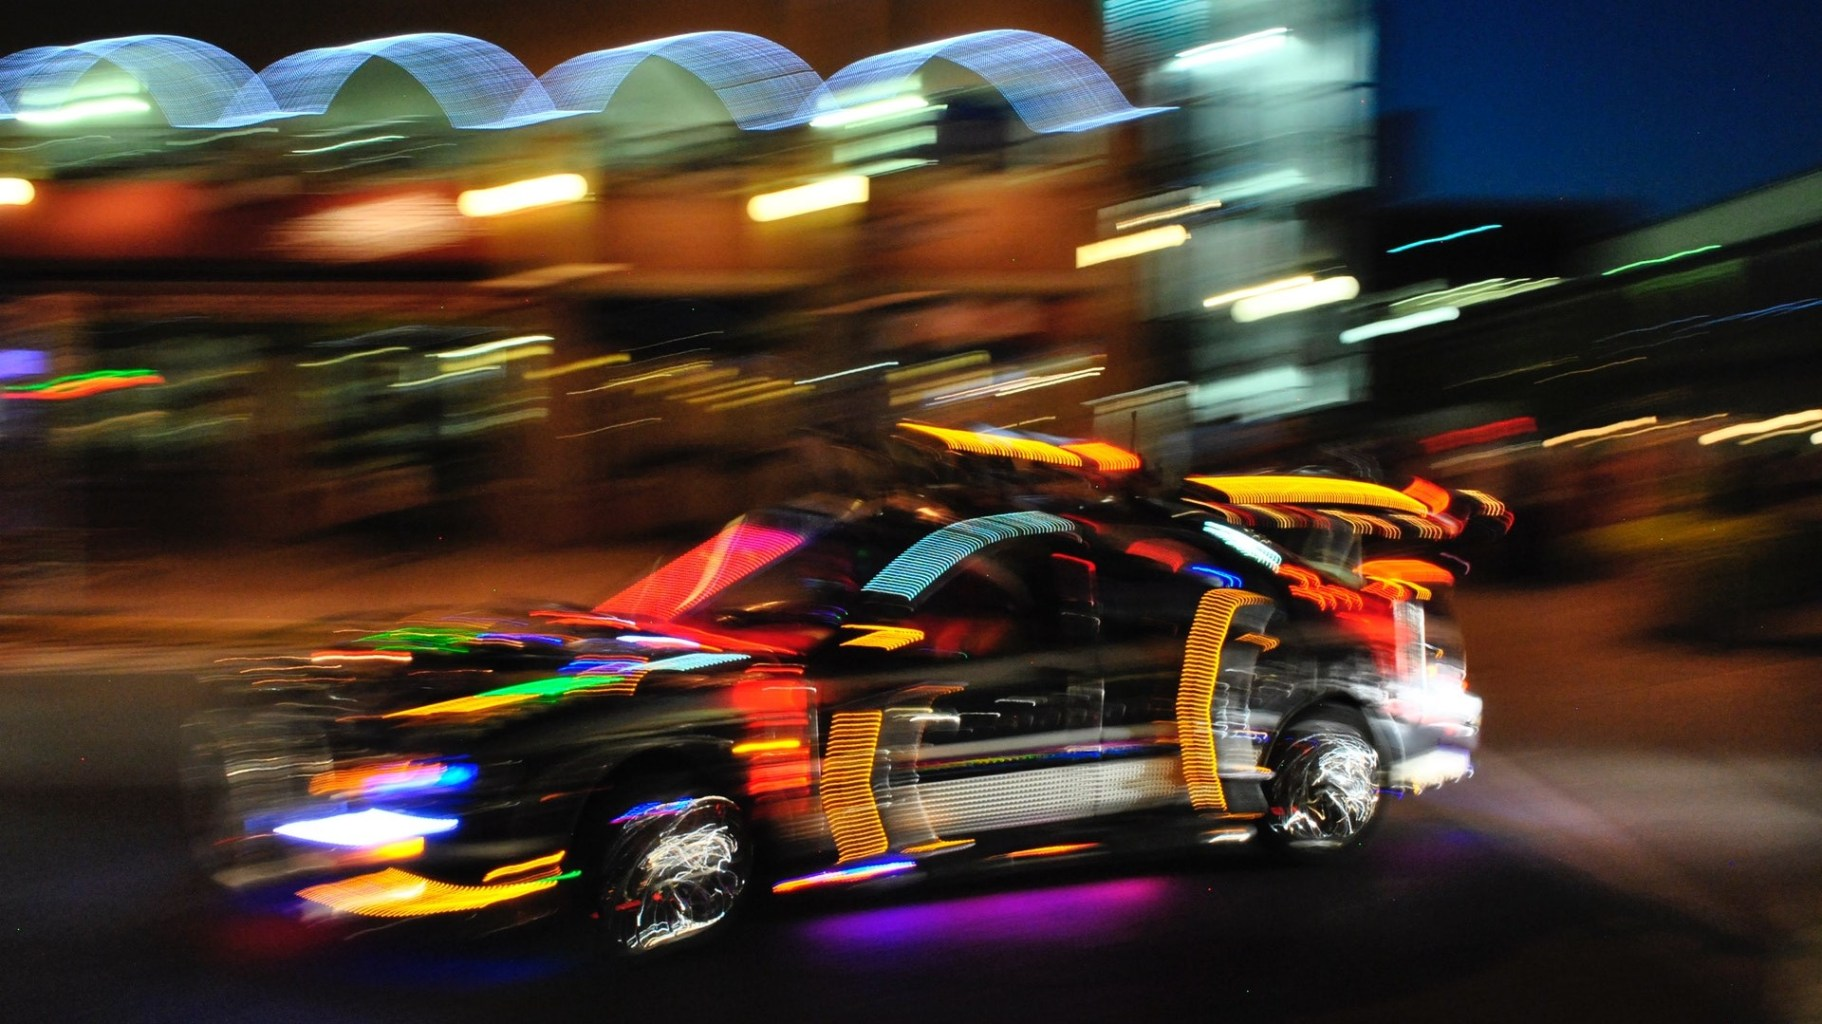 Image: Race car at night with blurry and colorful light